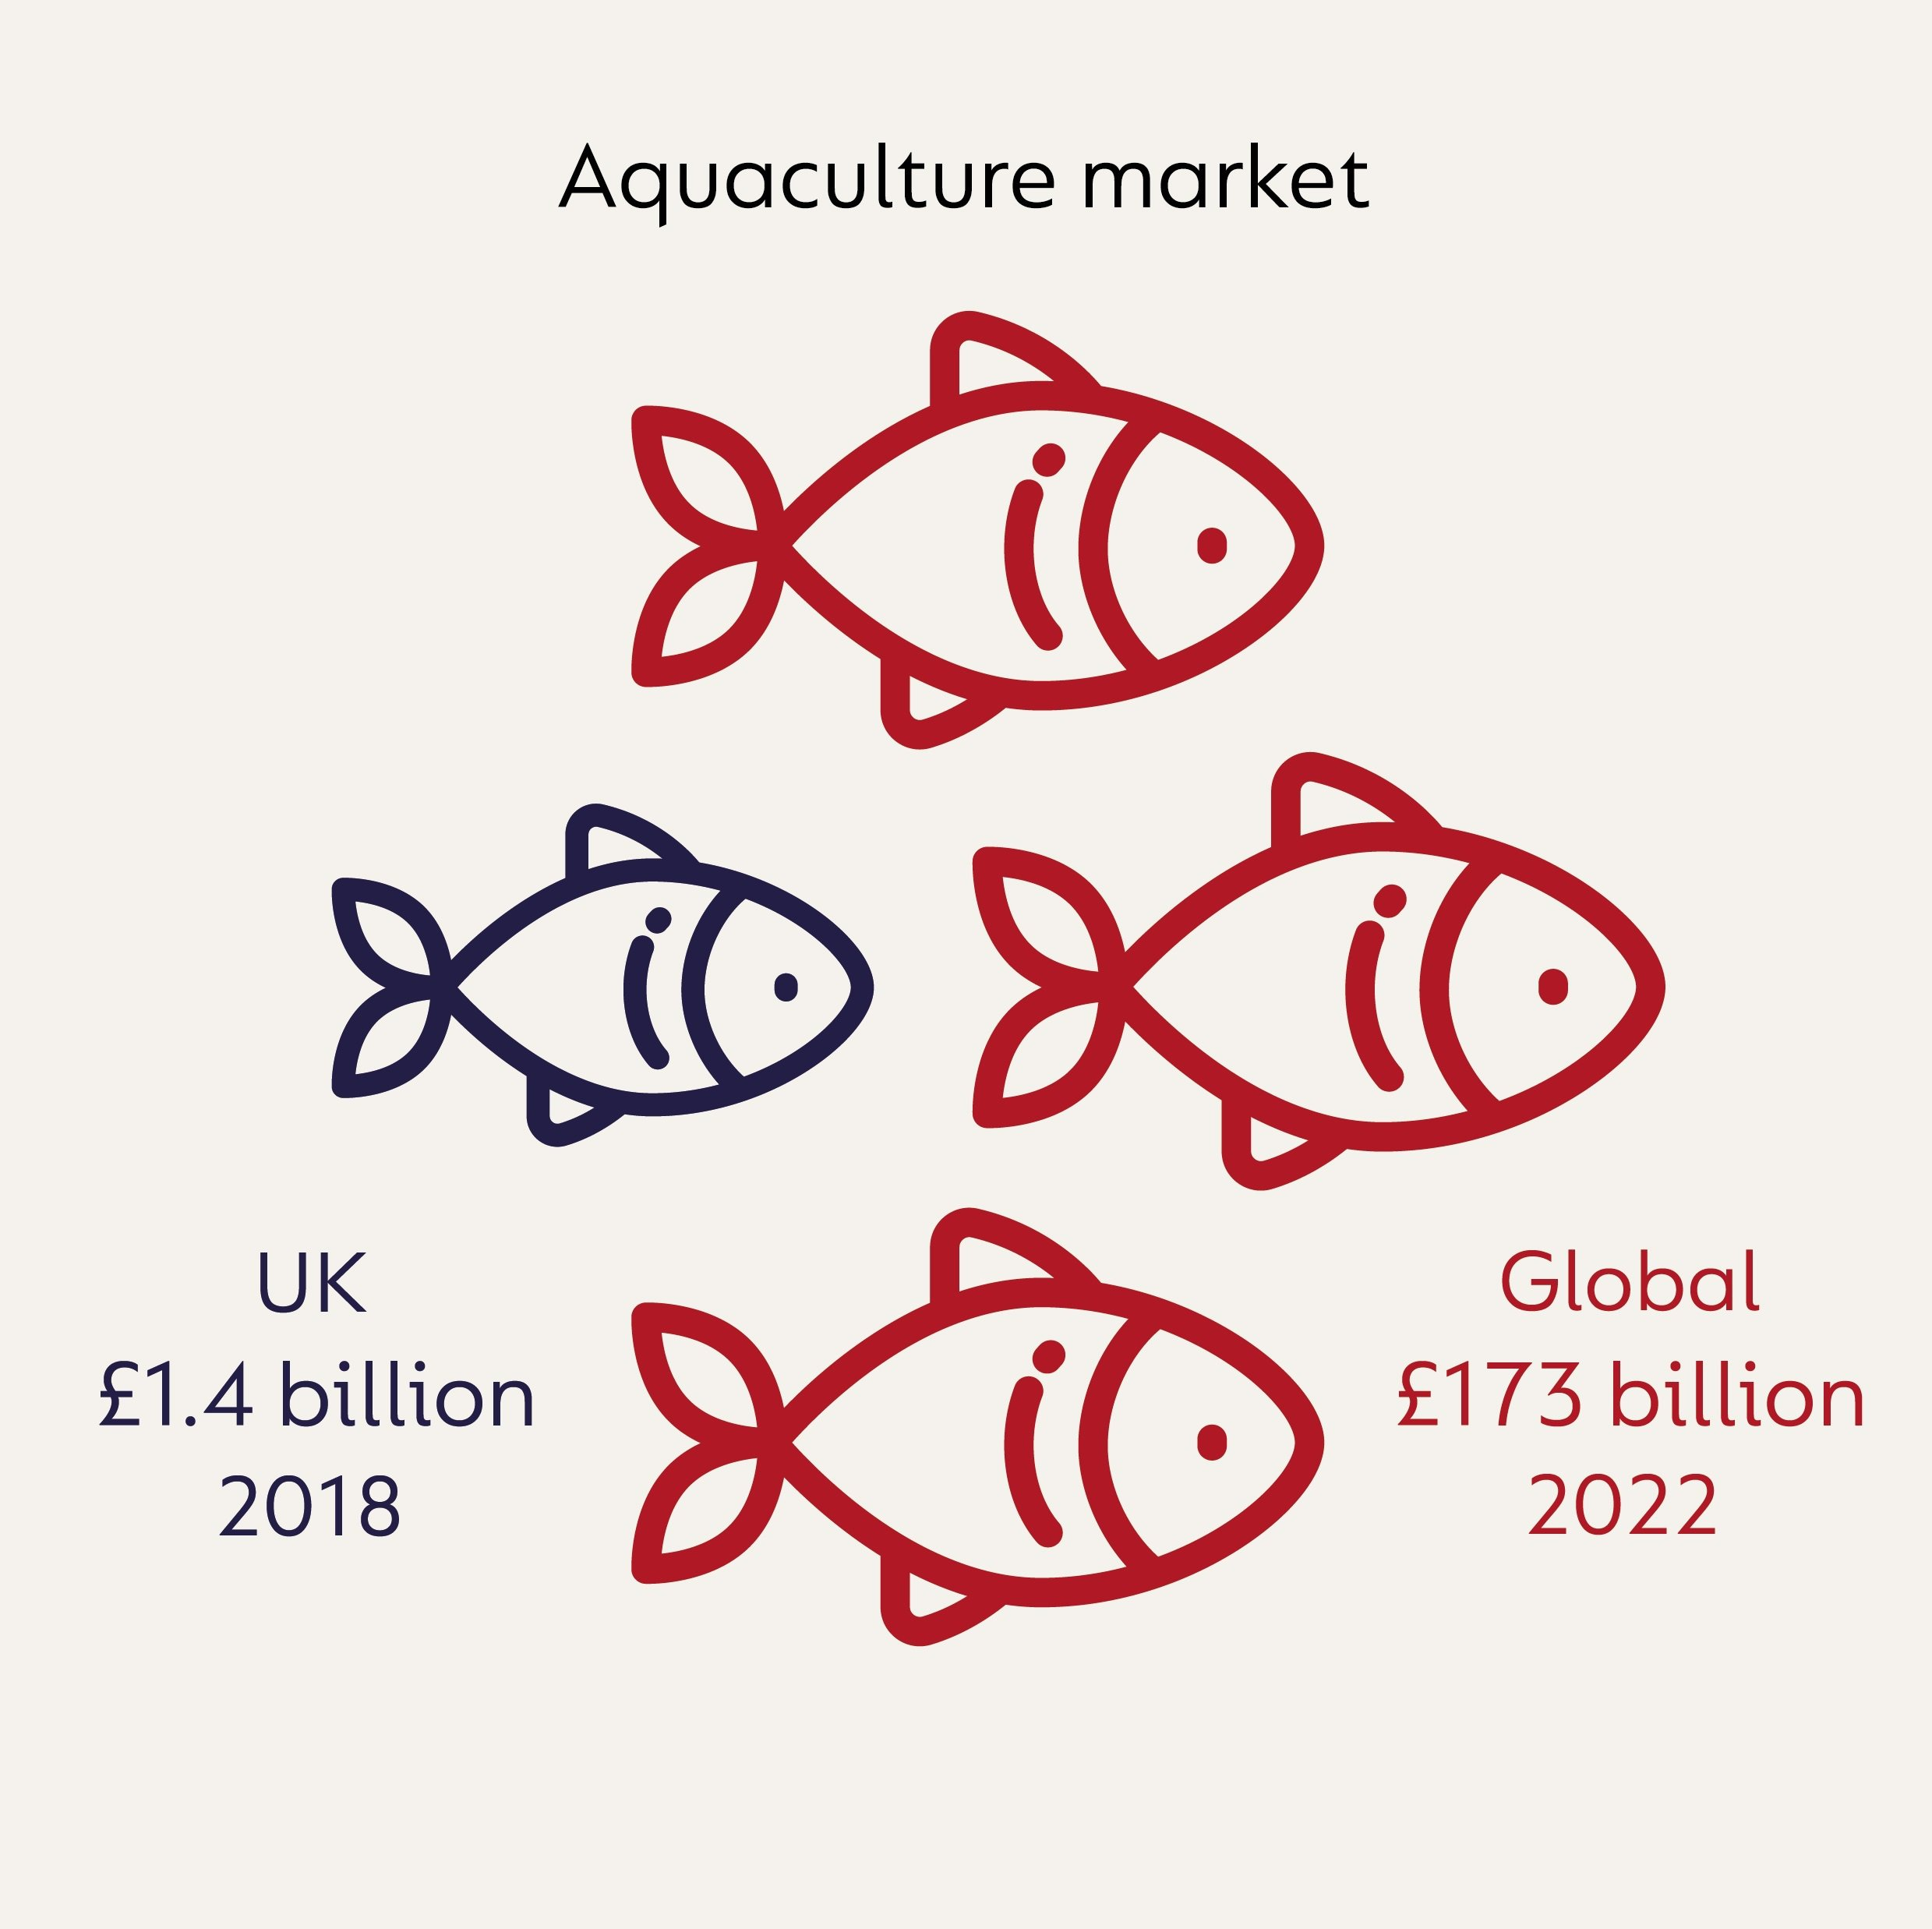 Infographic showing the information that the UK aquaculture market was valued at £1.4 billion in 2018 and that the forecast value for the global market is £173 billion by 2022.